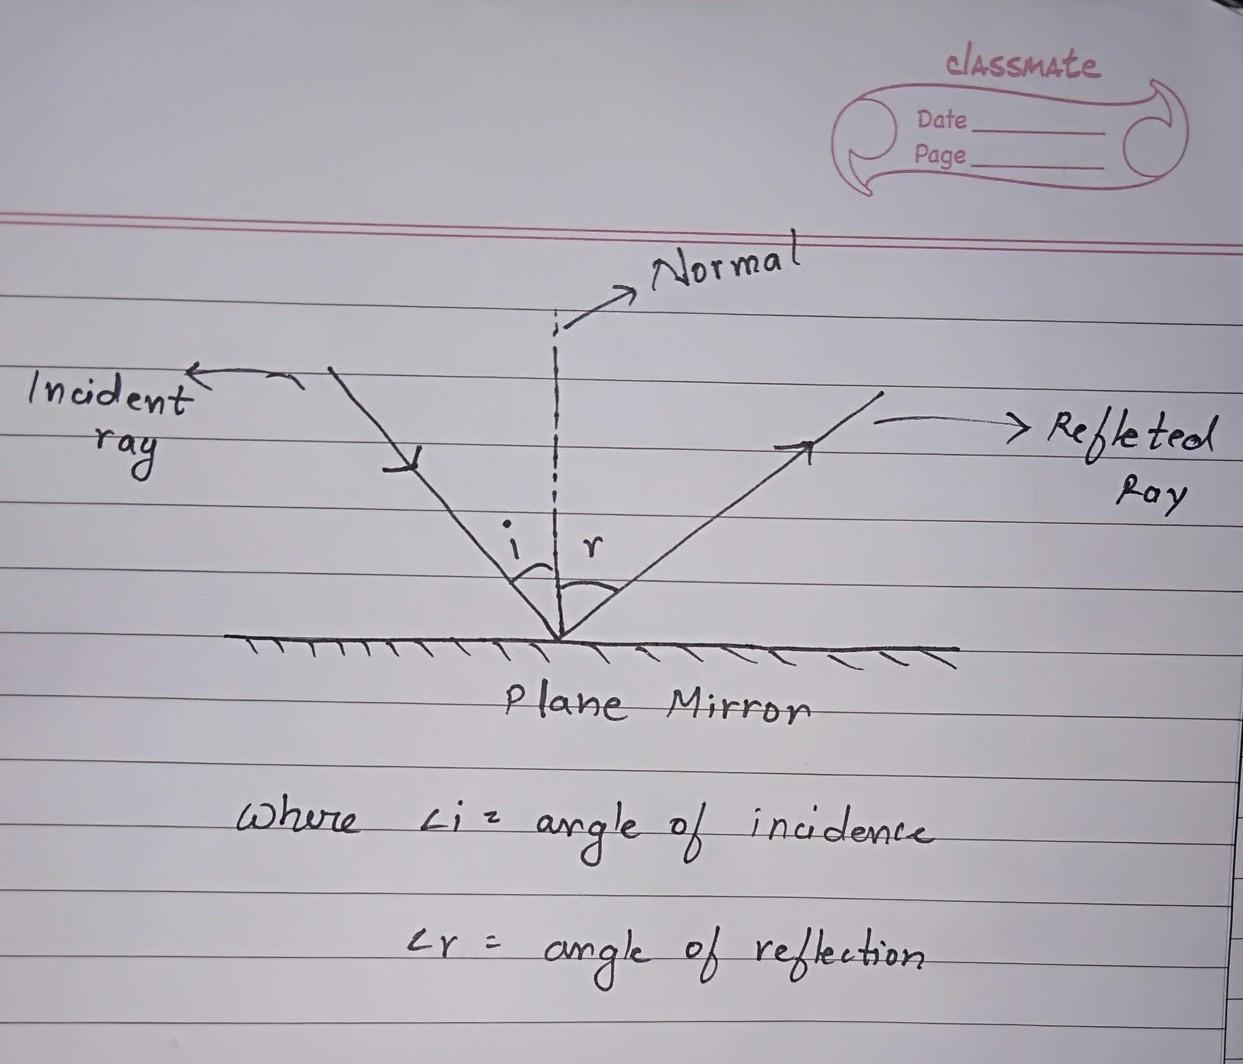 A Ray Of Light Is Incident On A Plane Mirror And The Angle